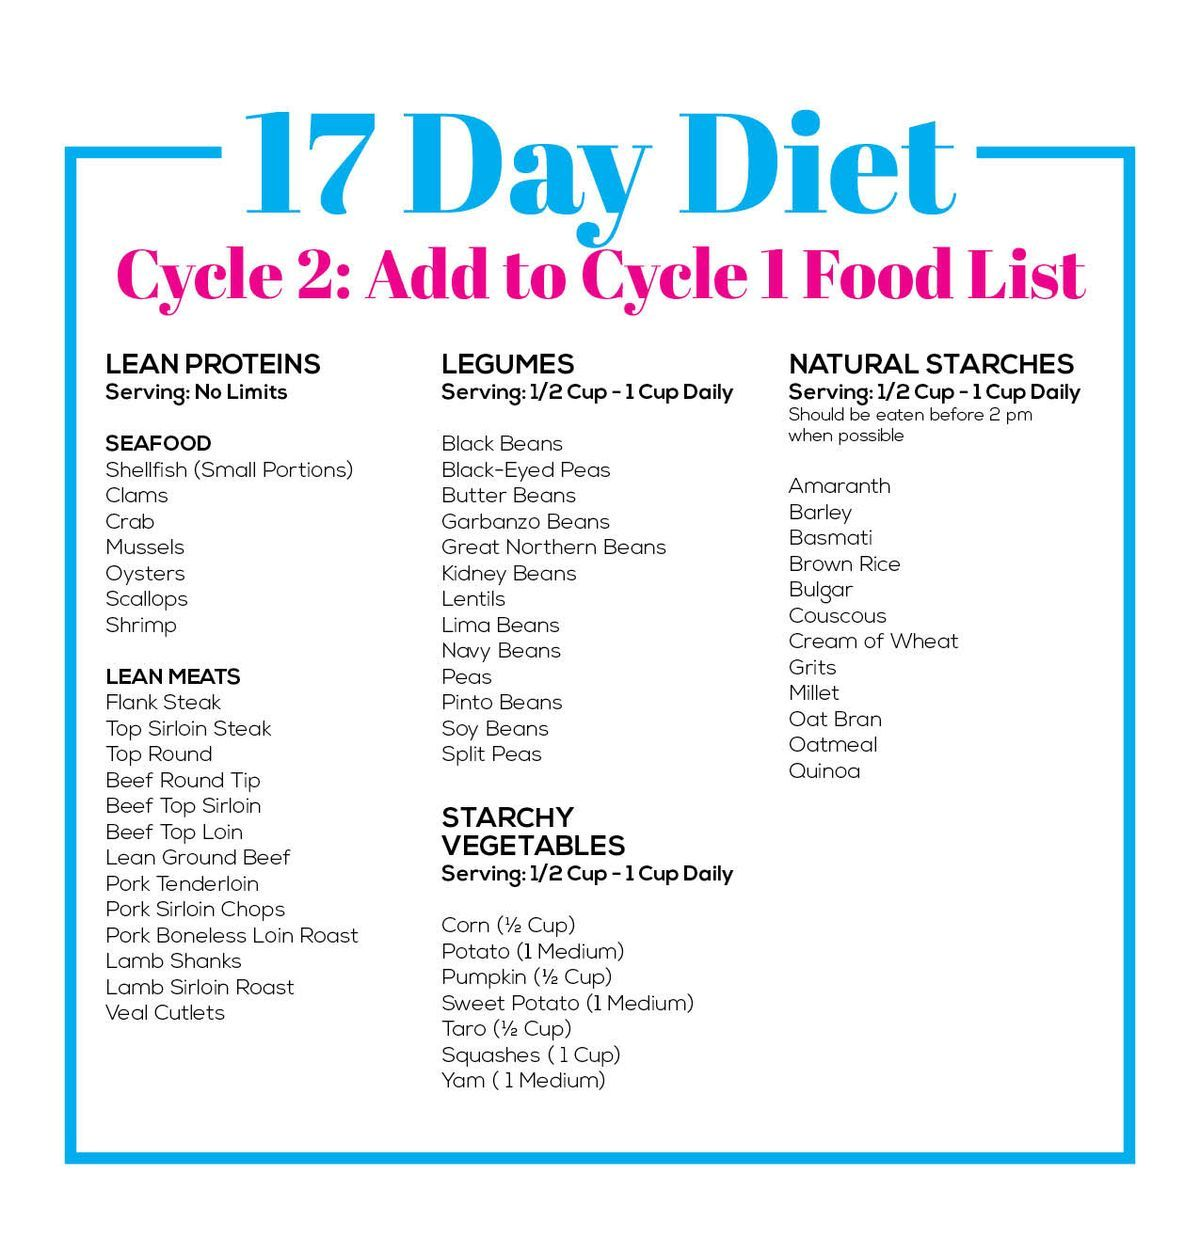 17 day diet recipes cycle 1 snacks